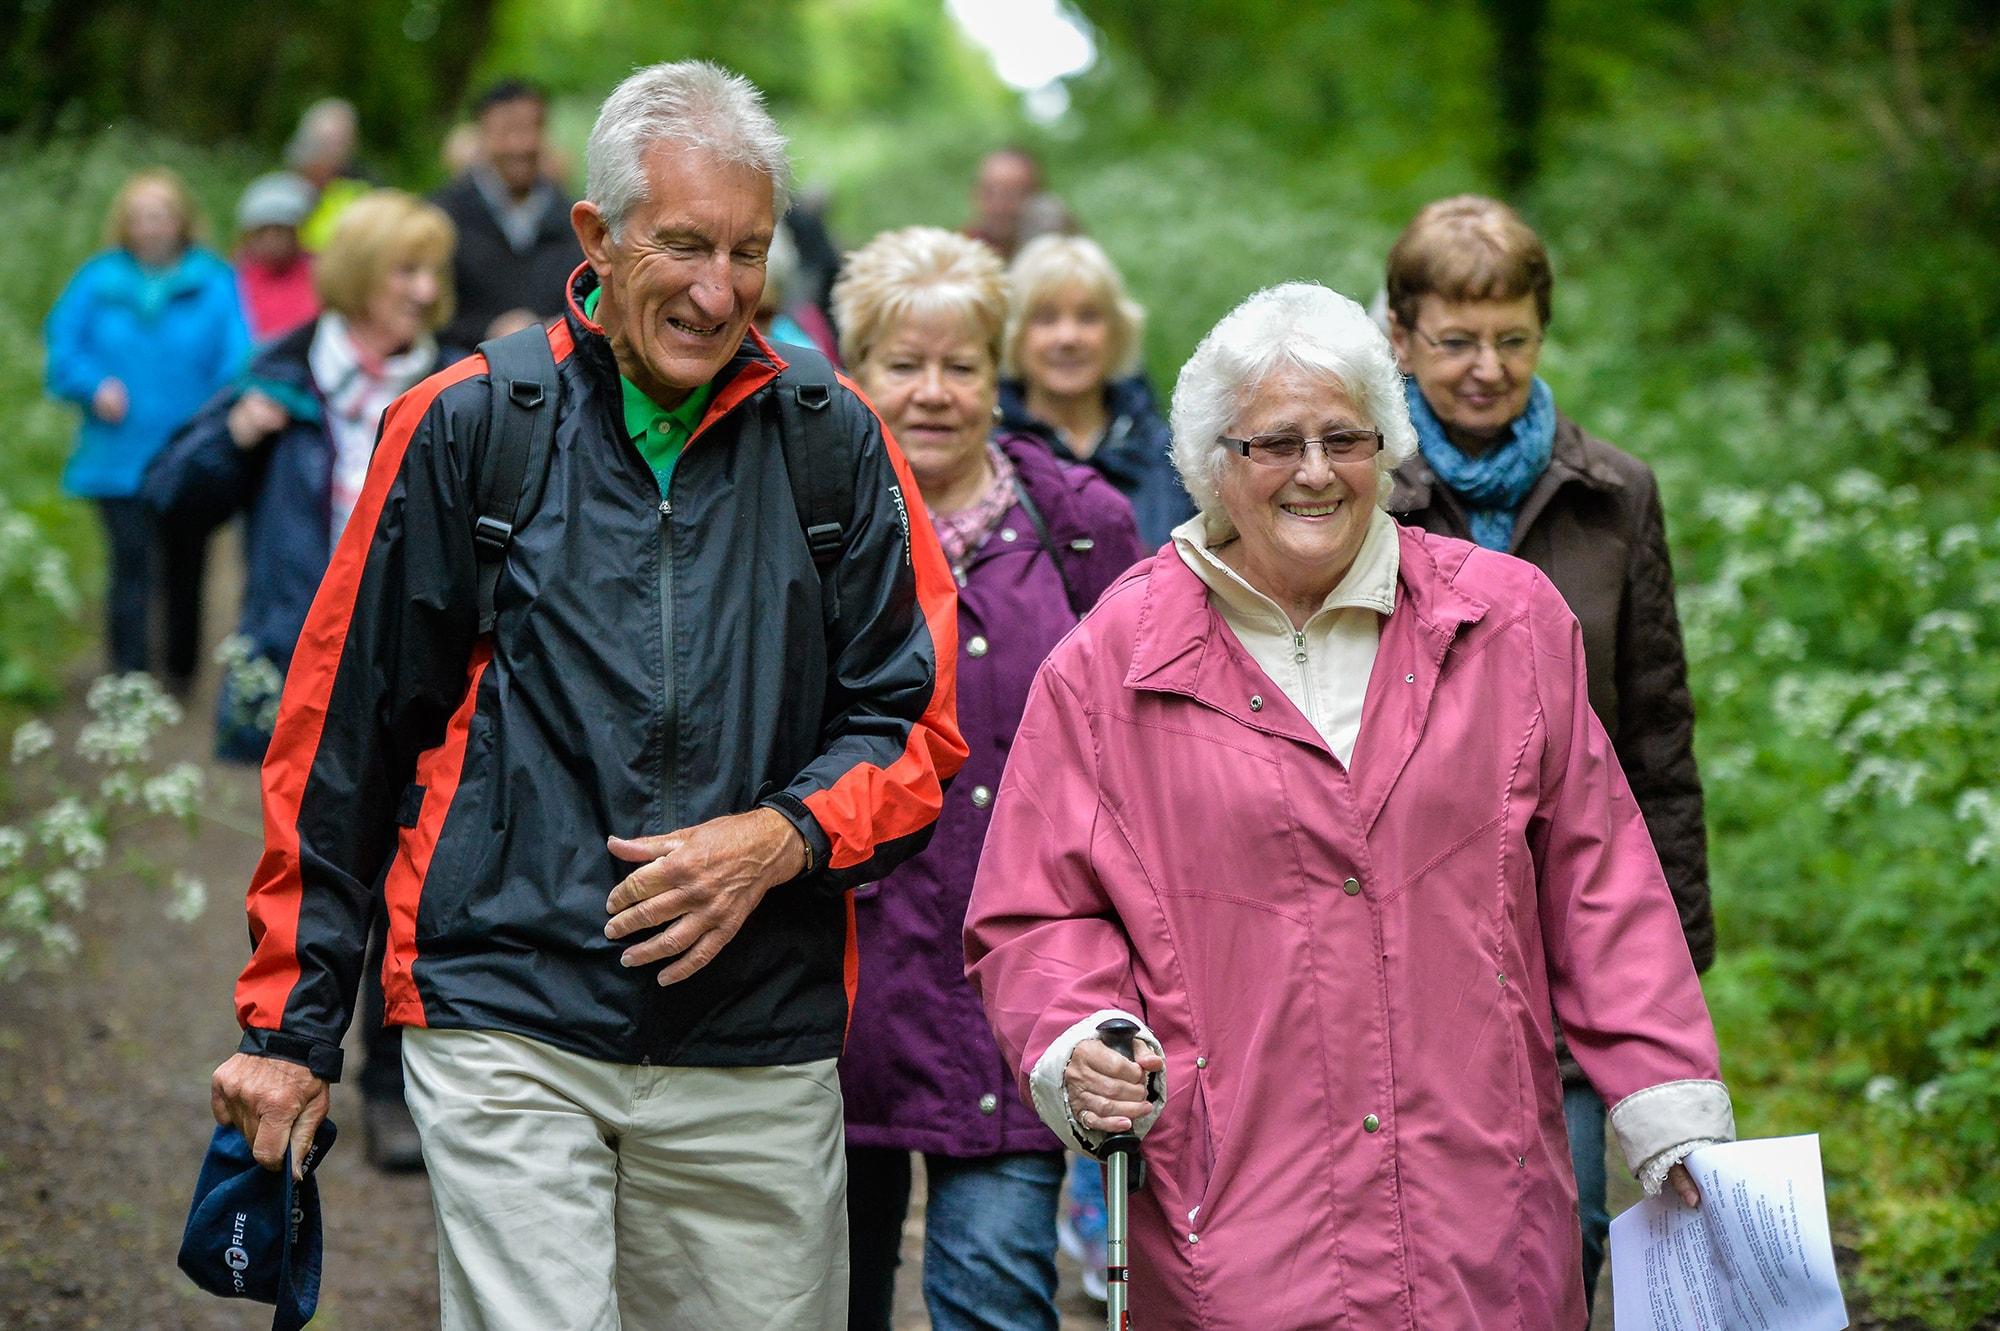 group of older people on a health walk